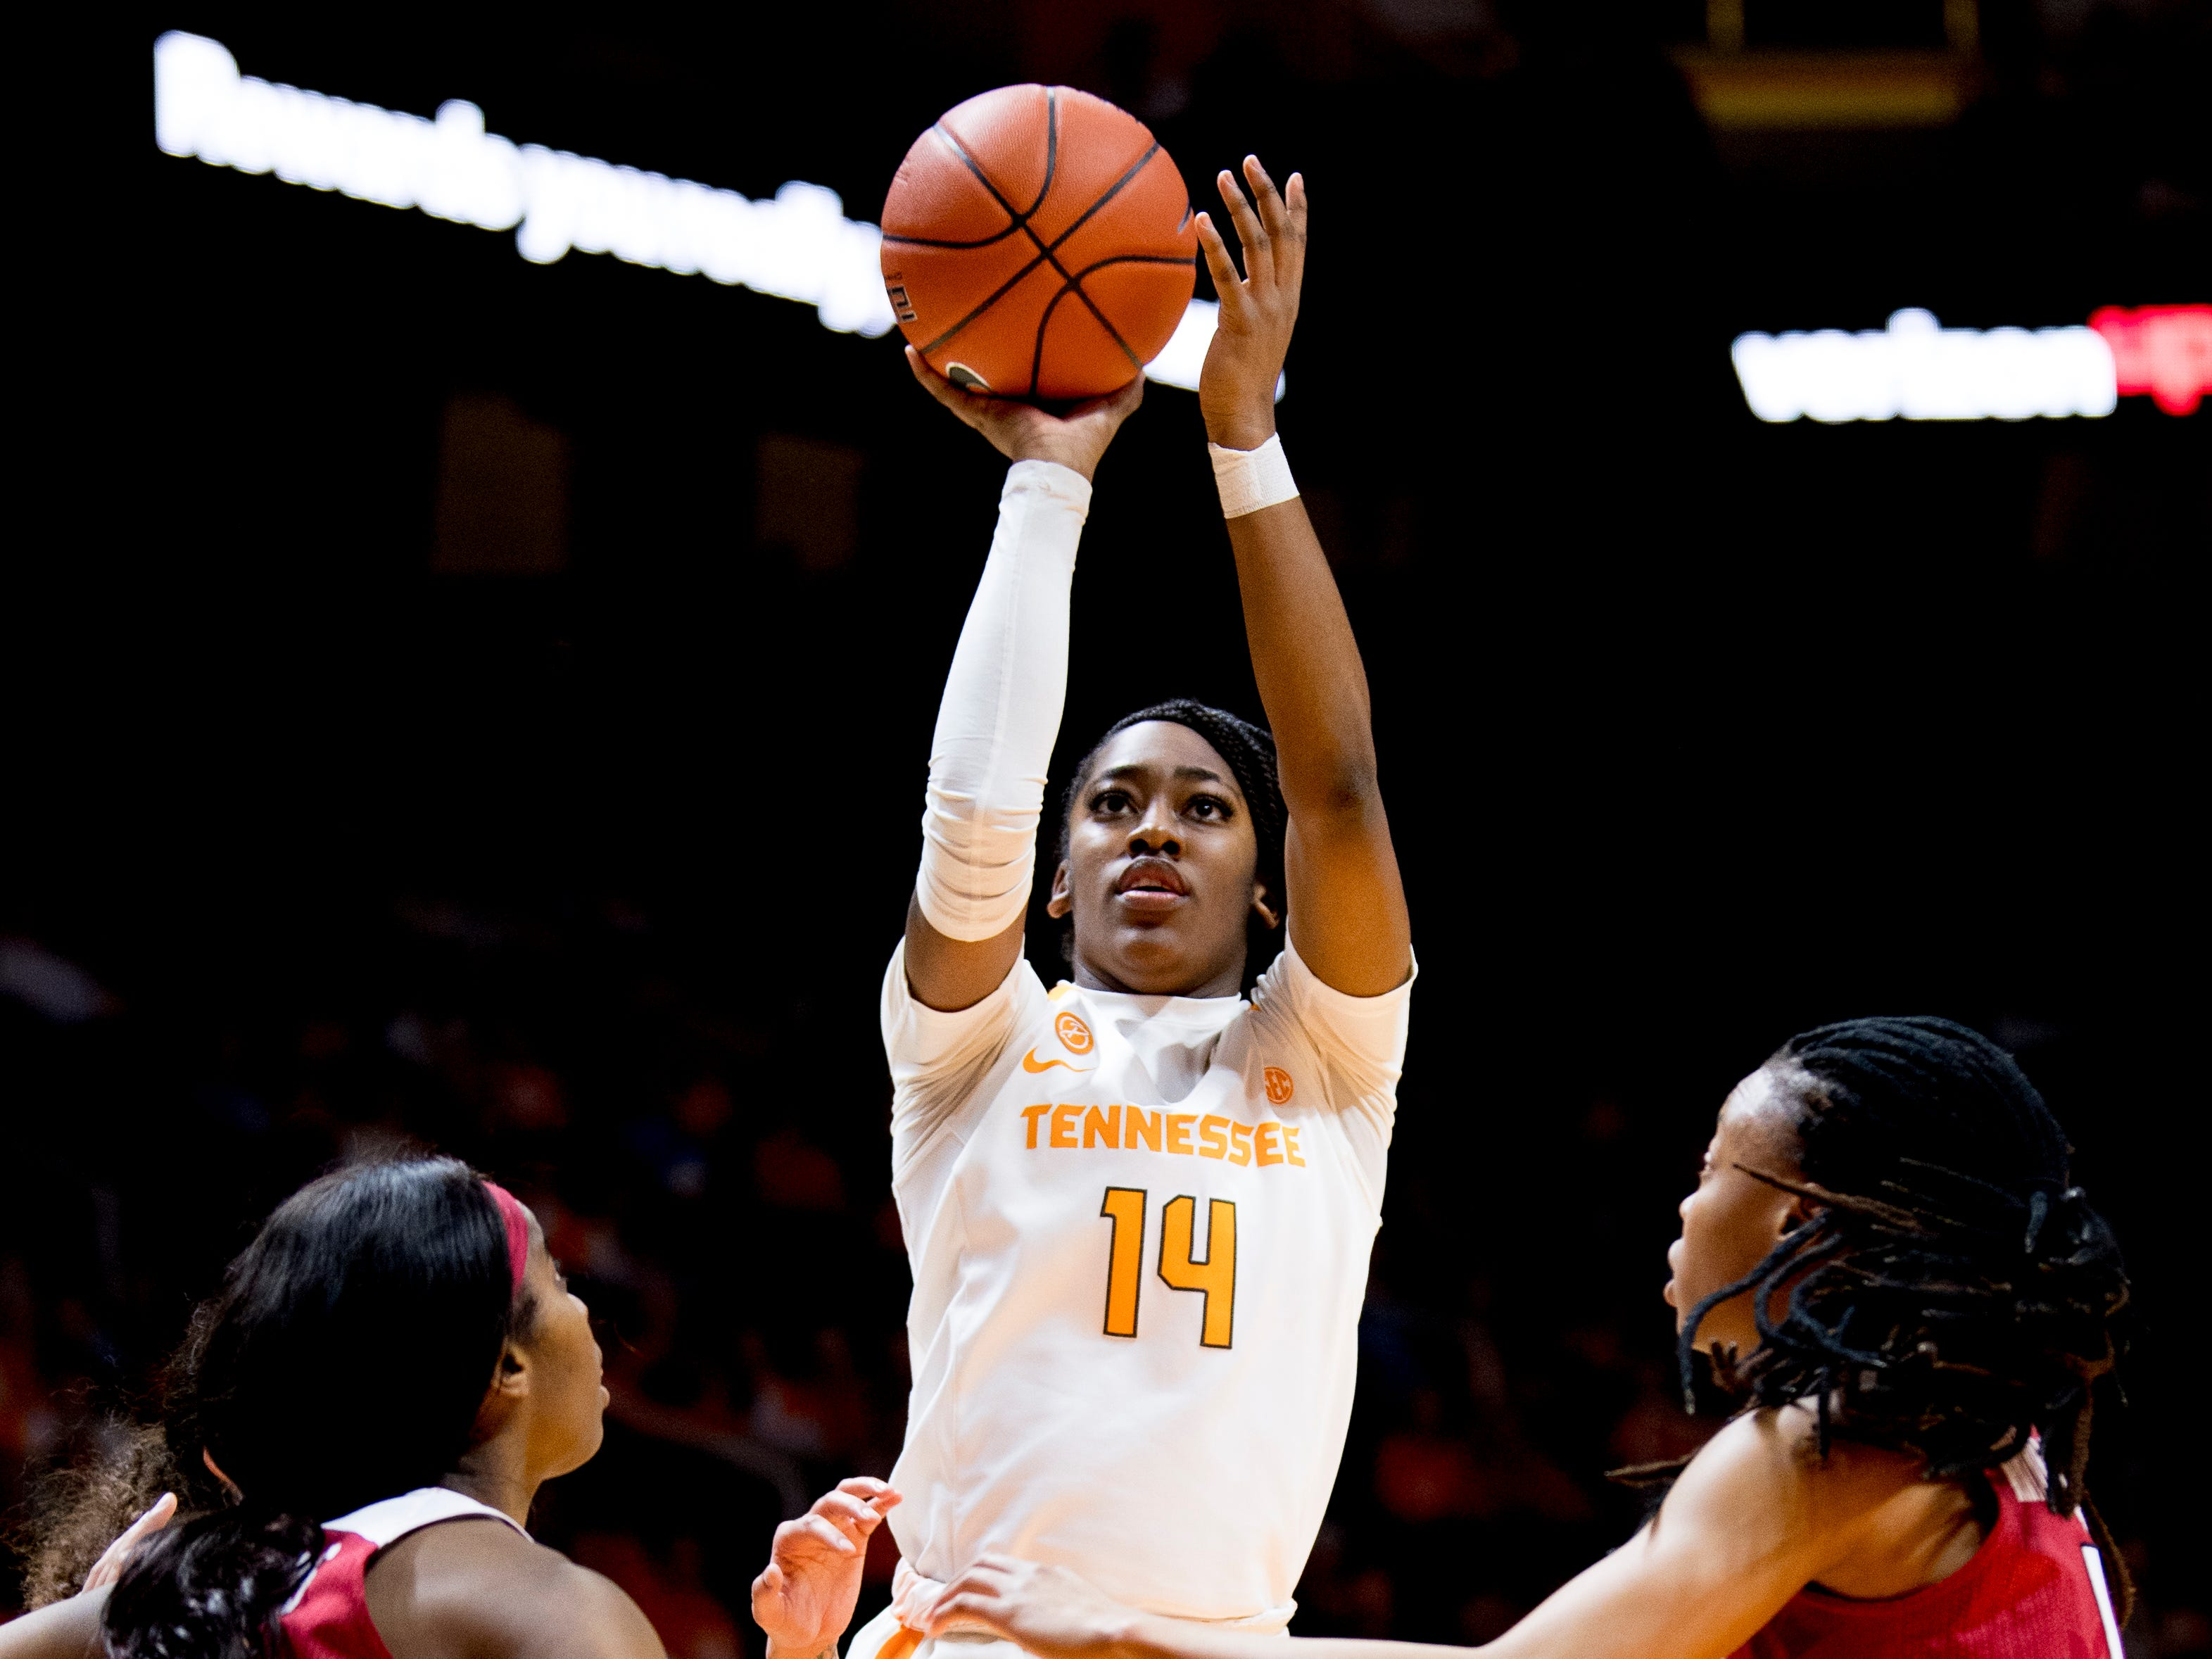 Tennessee guard Zaay Green (14) shoots the ball during a game between Tennessee and Arkansas at Thompson-Boling Arena in Knoxville, Tennessee on Monday, January 21, 2019.